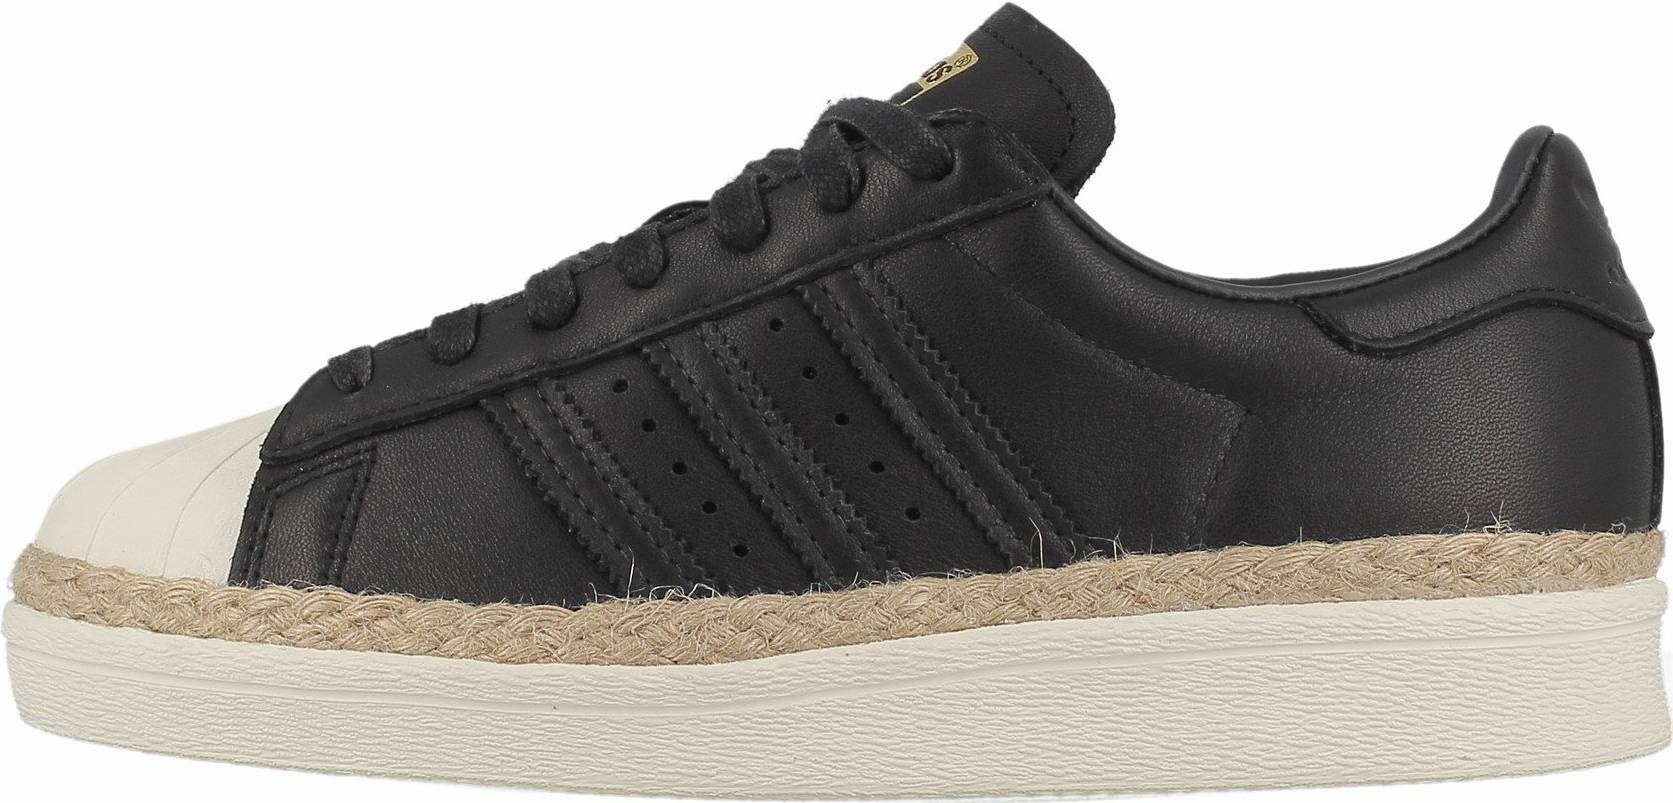 Adidas Superstar 80s New Bold sneakers in black (only $80)   RunRepeat